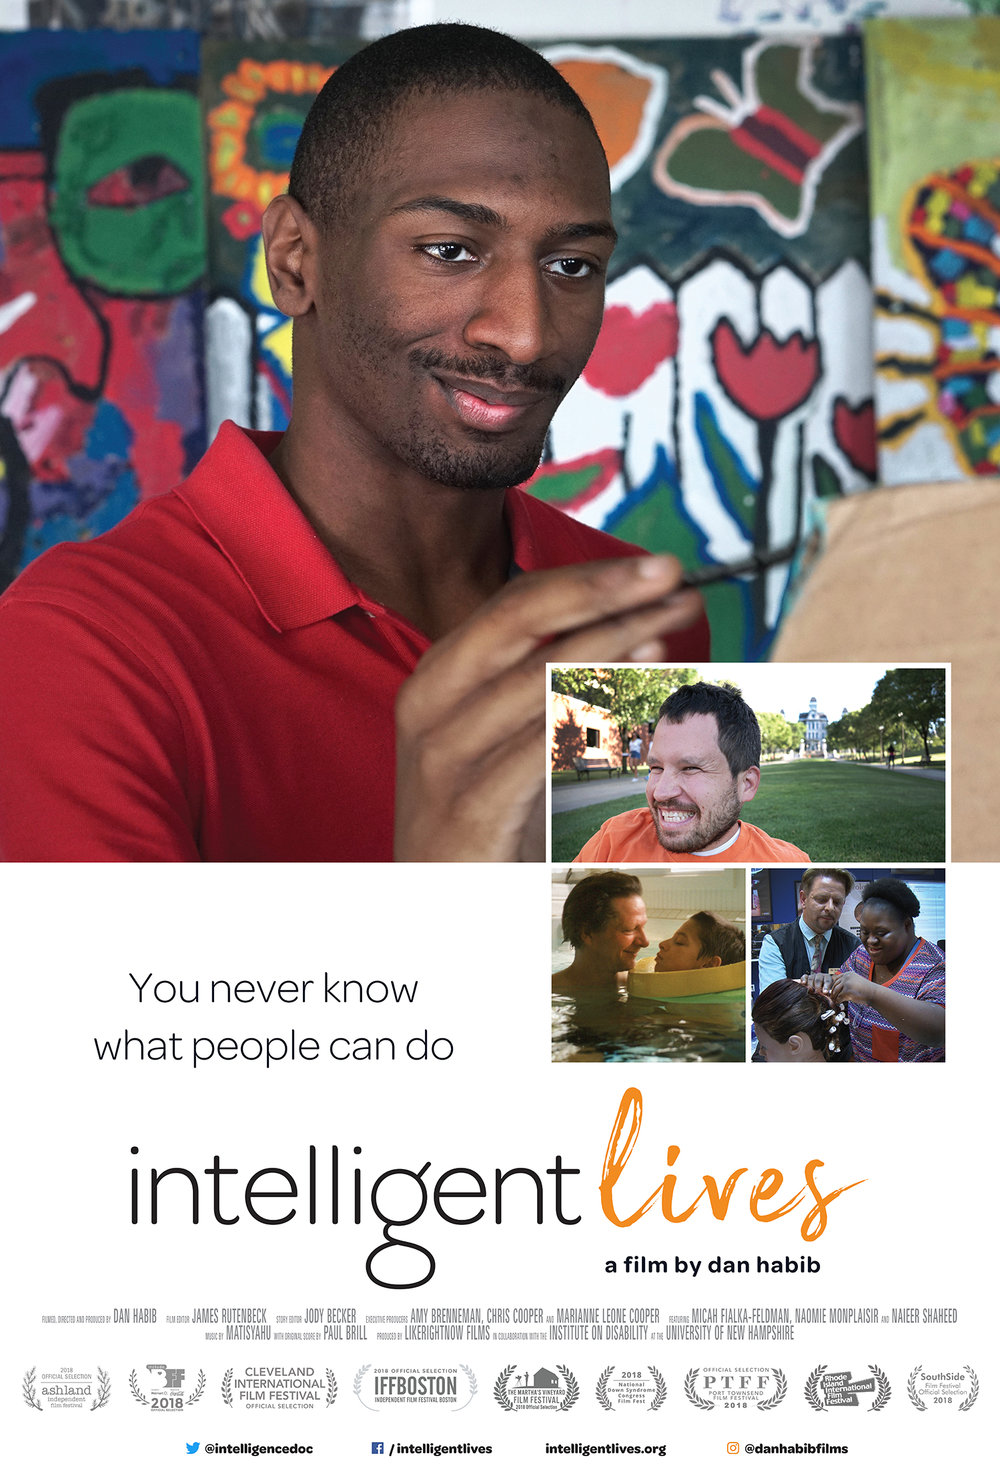 INTELLIGENT LIVES challenges what it means to be intelligent, and points to a future in which people of all abilities can fully participate in higher education, meaningful employment, and intimate relationship. — Lead Sponsors: Natick Special Education Parents Advisory Council (SEPAC), Natick Public Schools, Natick is UNITED, SPARK Kindness